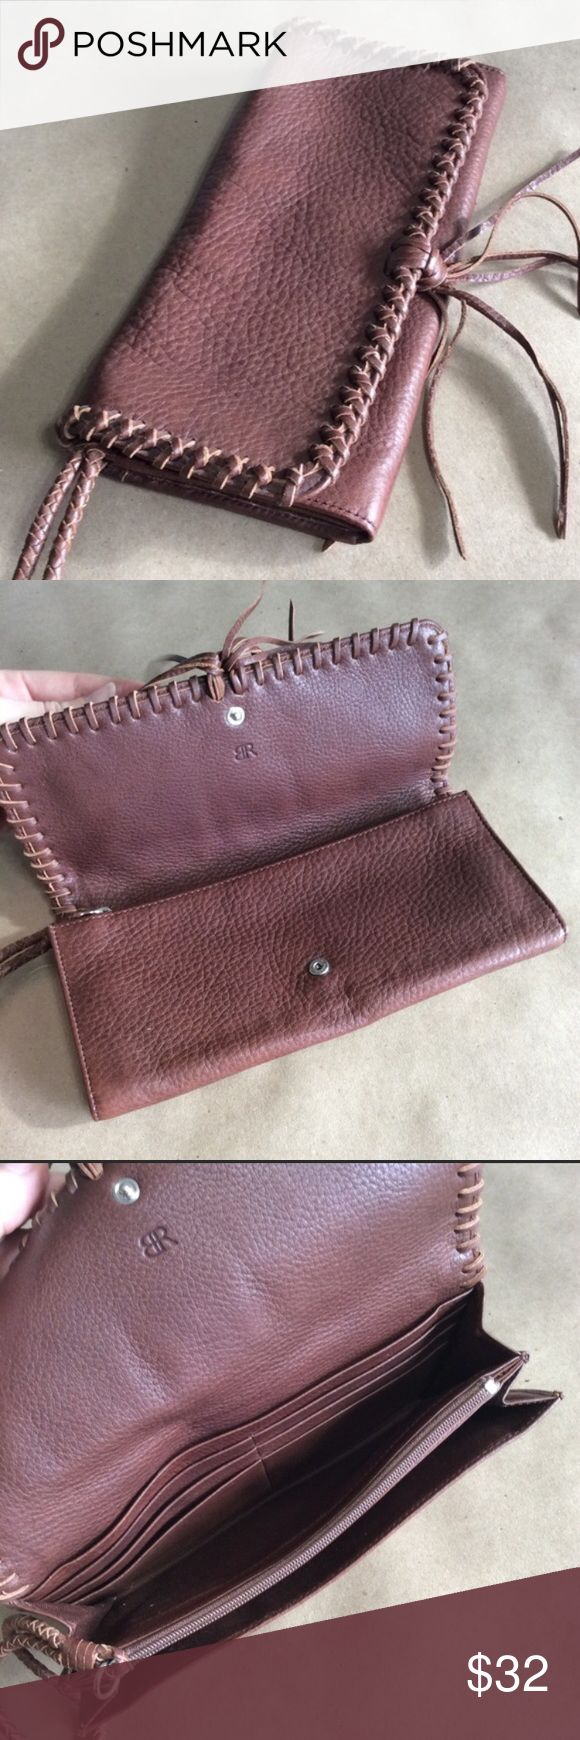 Banana Republic Wallet Banana Republic Brown Leather Wallet/Clutch! Credit Cards slots, clasps for closure, and strap for a wristlet! Banana Republic Bags